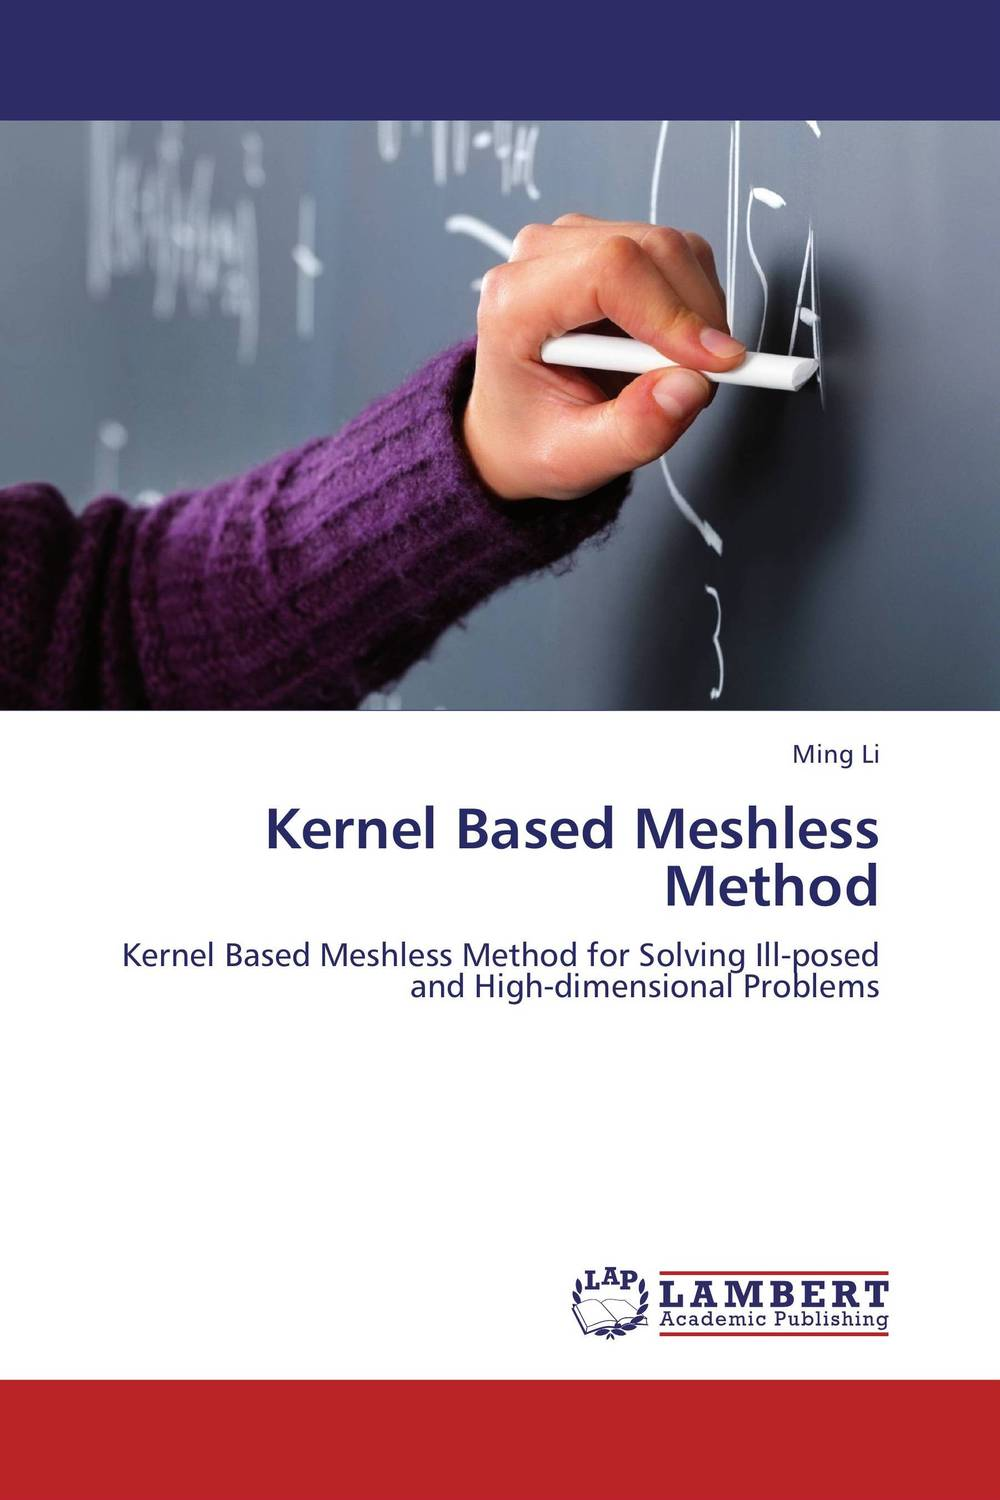 Kernel Based Meshless Method belousov a security features of banknotes and other documents methods of authentication manual денежные билеты бланки ценных бумаг и документов